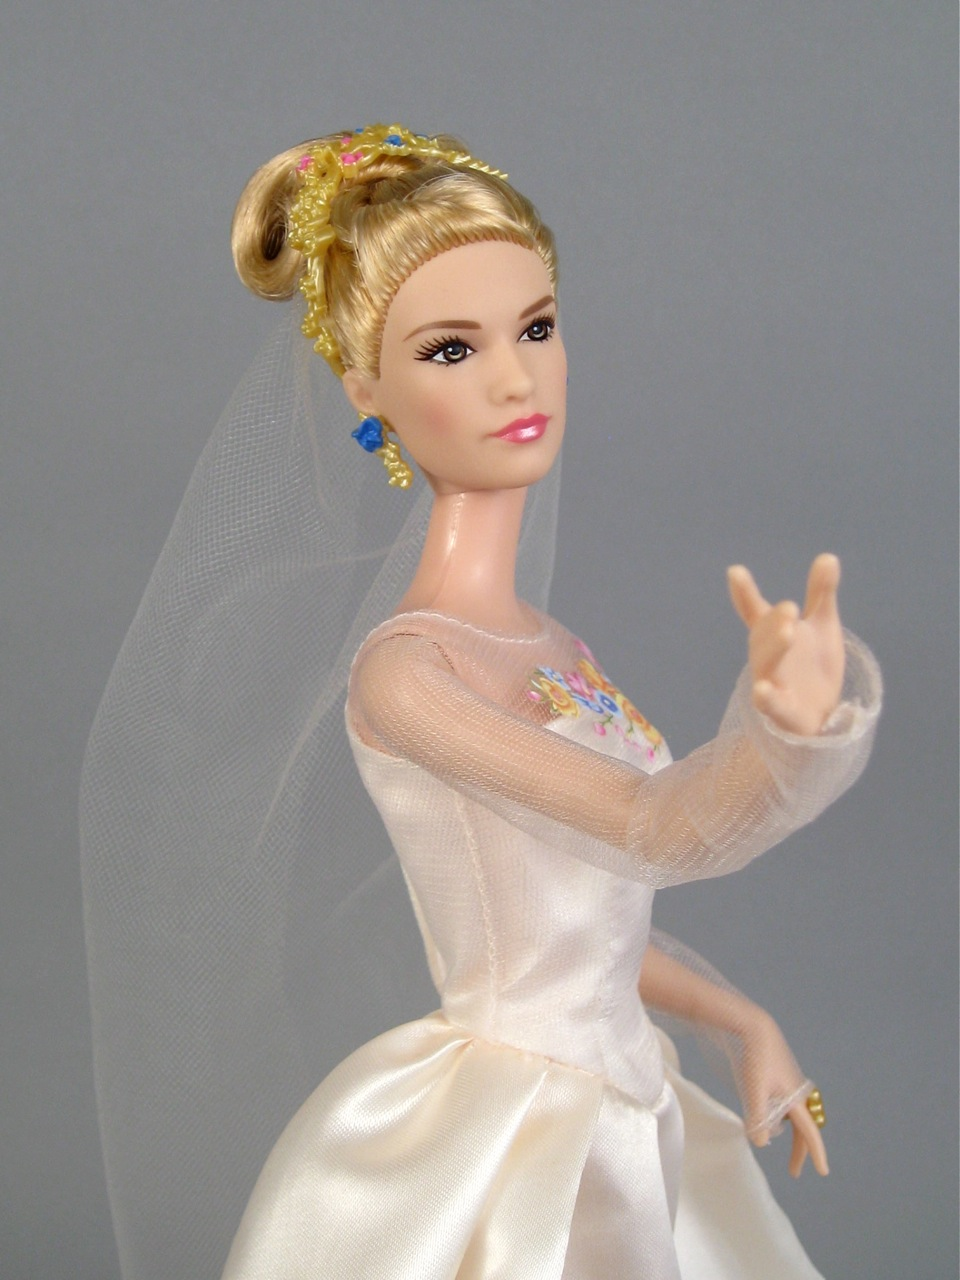 Mattel's Cinderella Wedding Day doll